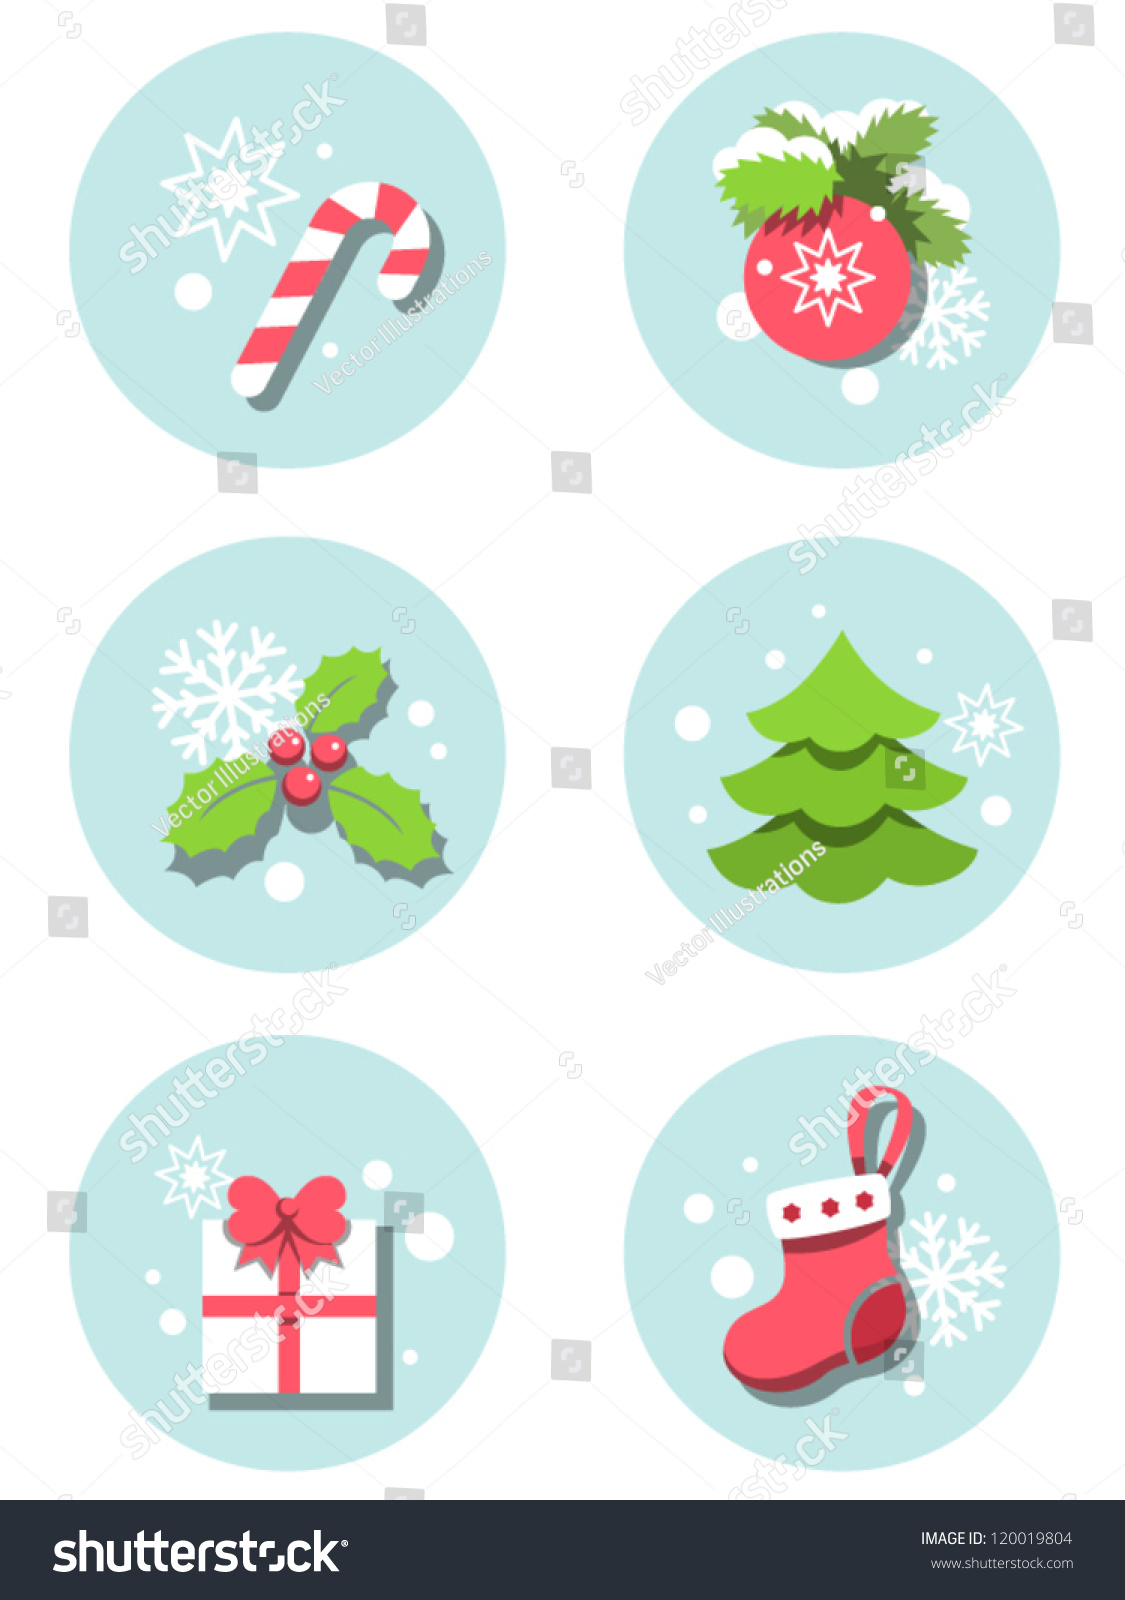 christmas illustrations useful set of xmas icons for web and christmas illustrations useful set of xmas icons for web and print design greetings invitations gifts wrapping paper etc cartoon images